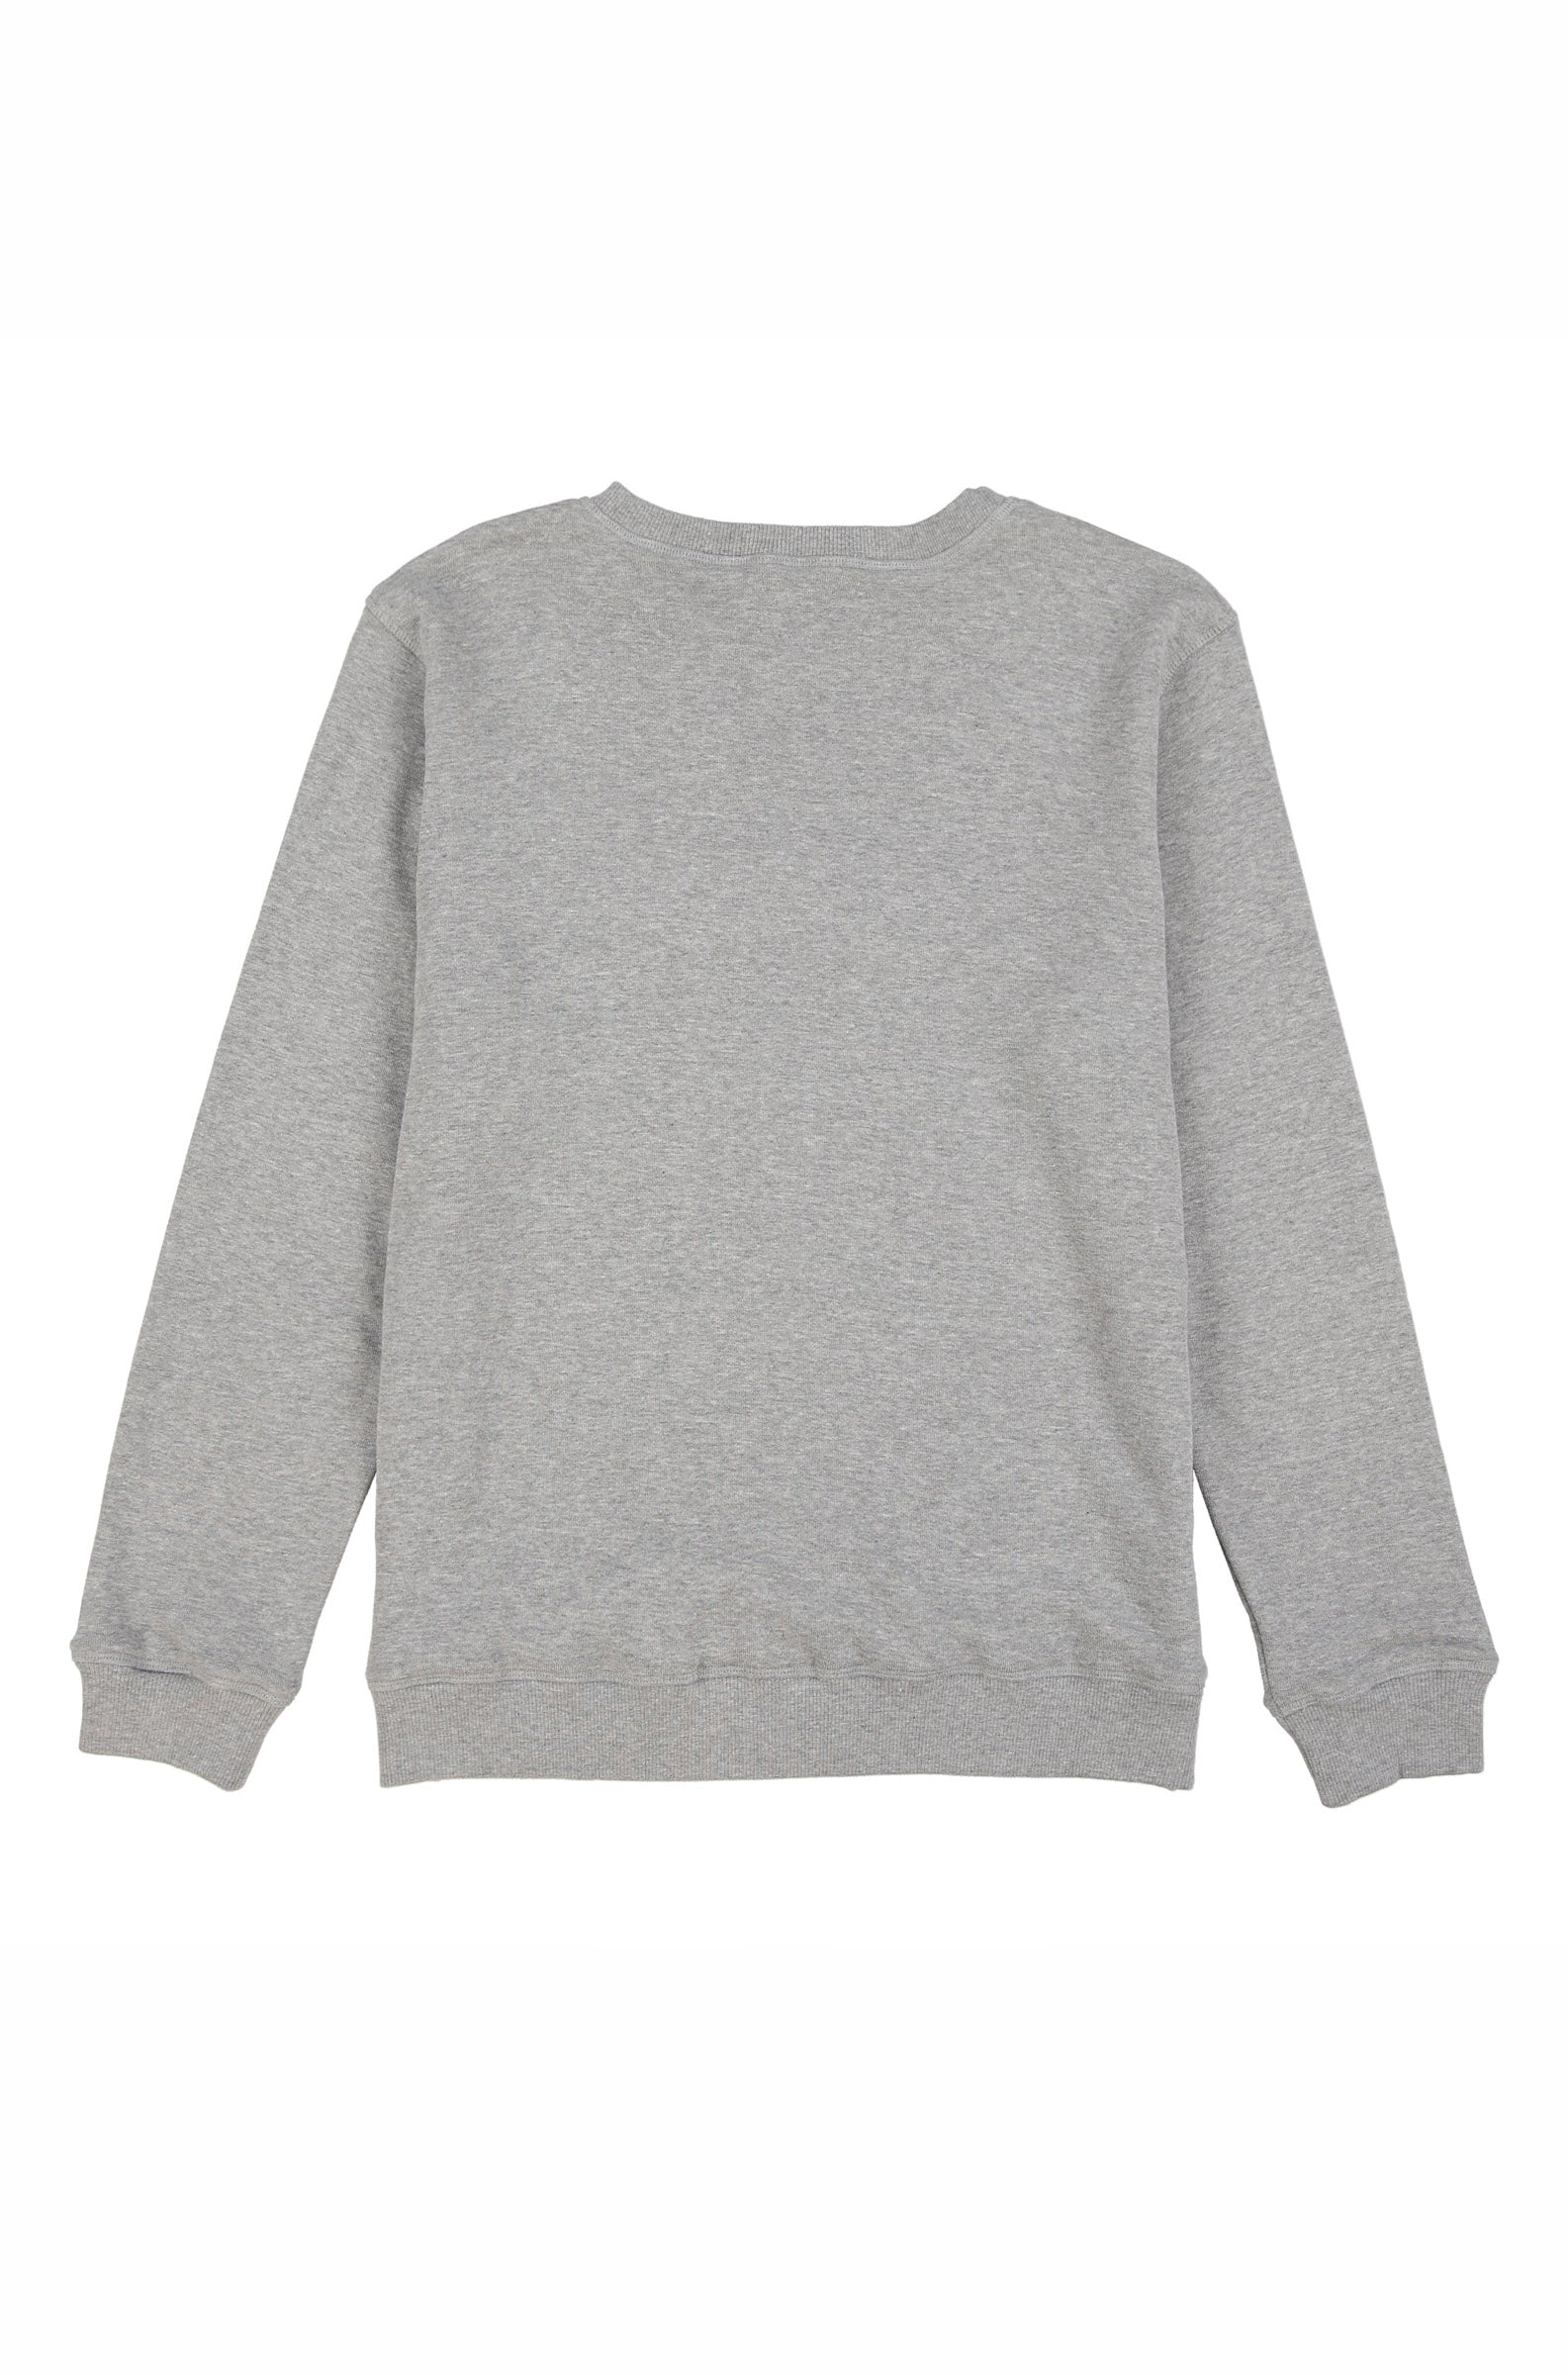 OYSTER LOGO CHENILLE CREW SWEATSHIRT (HEATHER GREY)